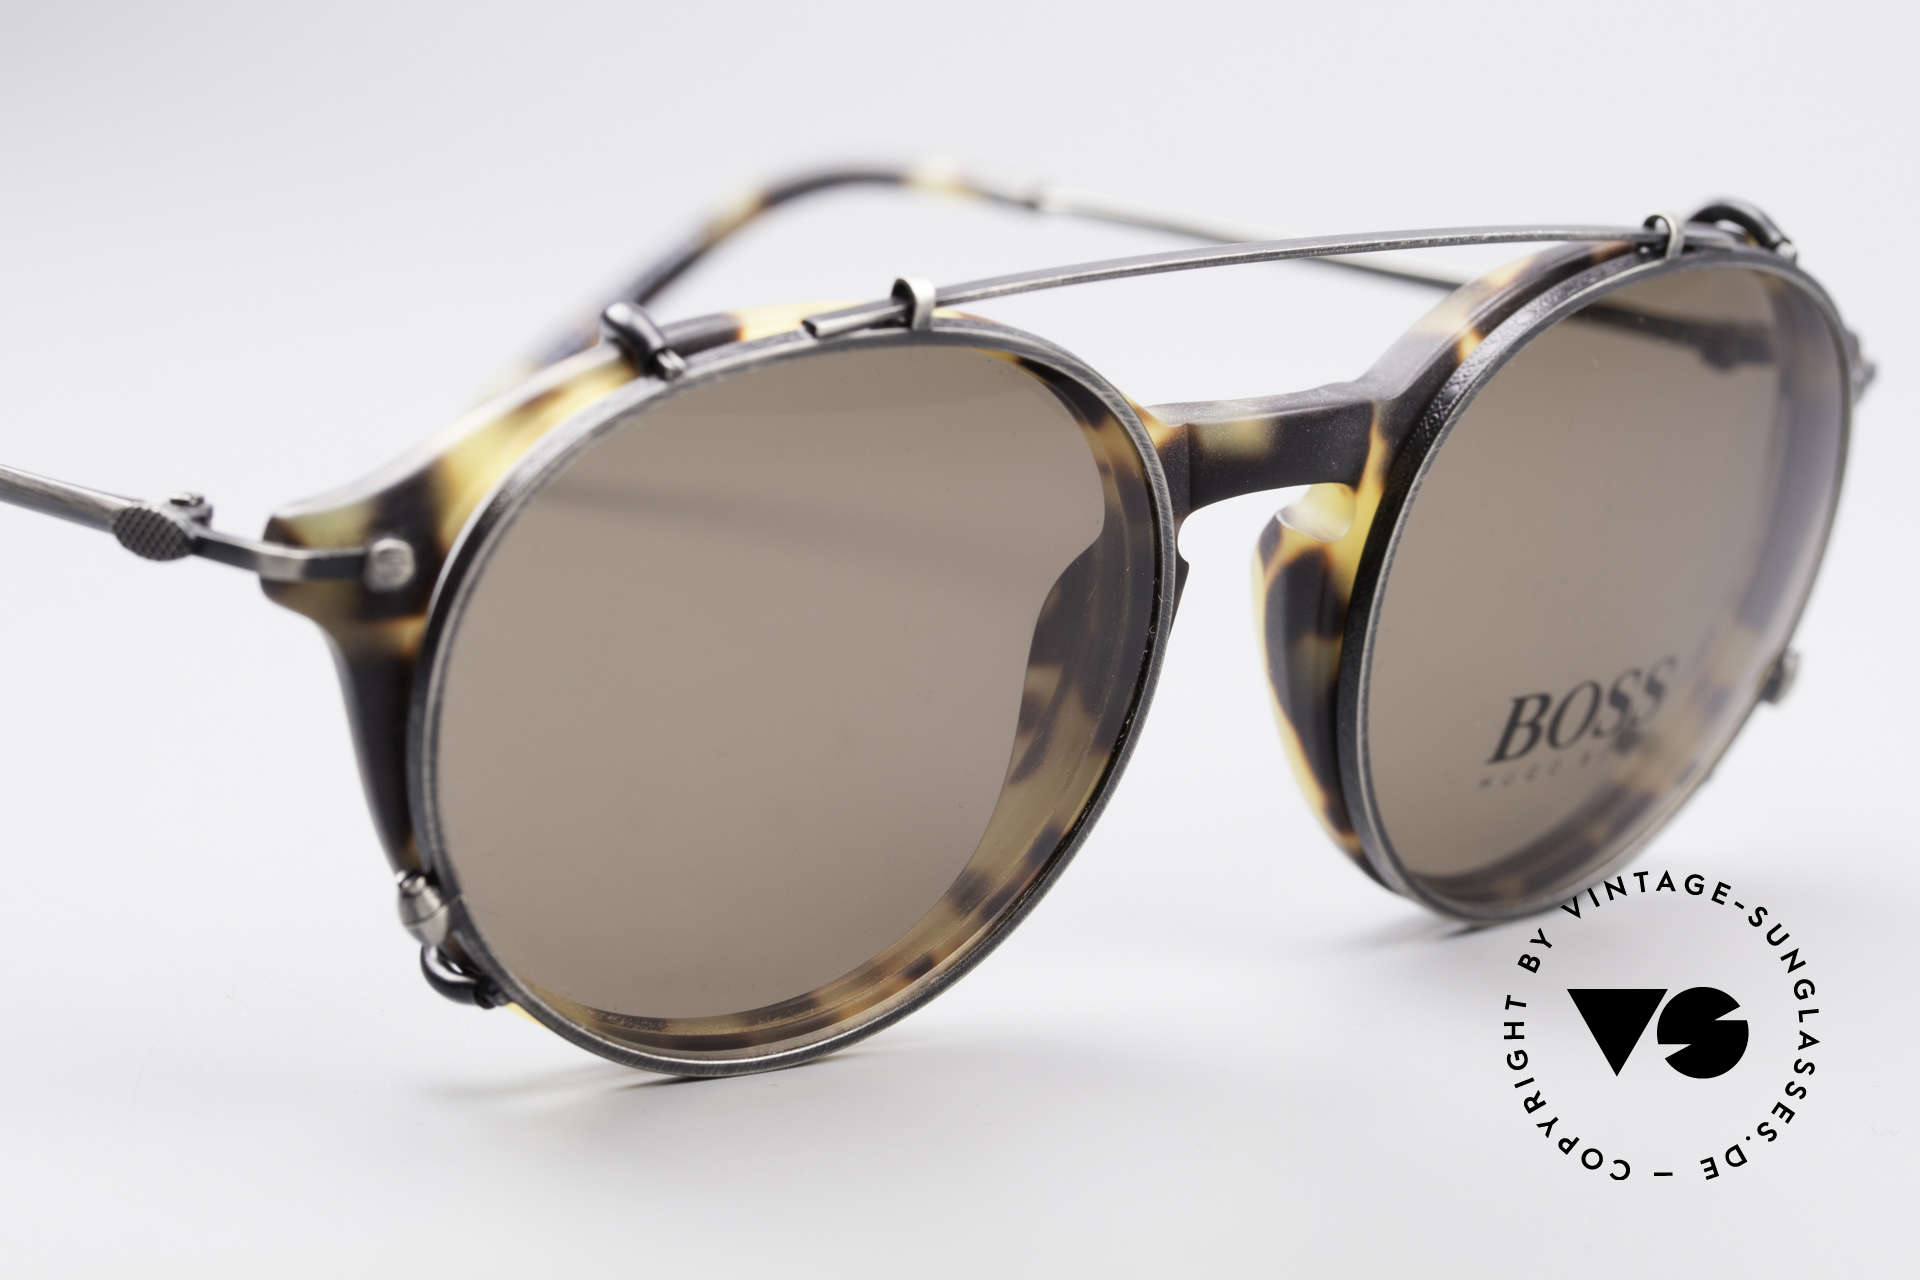 BOSS 5192 Sun Clip Panto Frame 1990's, timeless design and elegant combination of colors, Made for Men